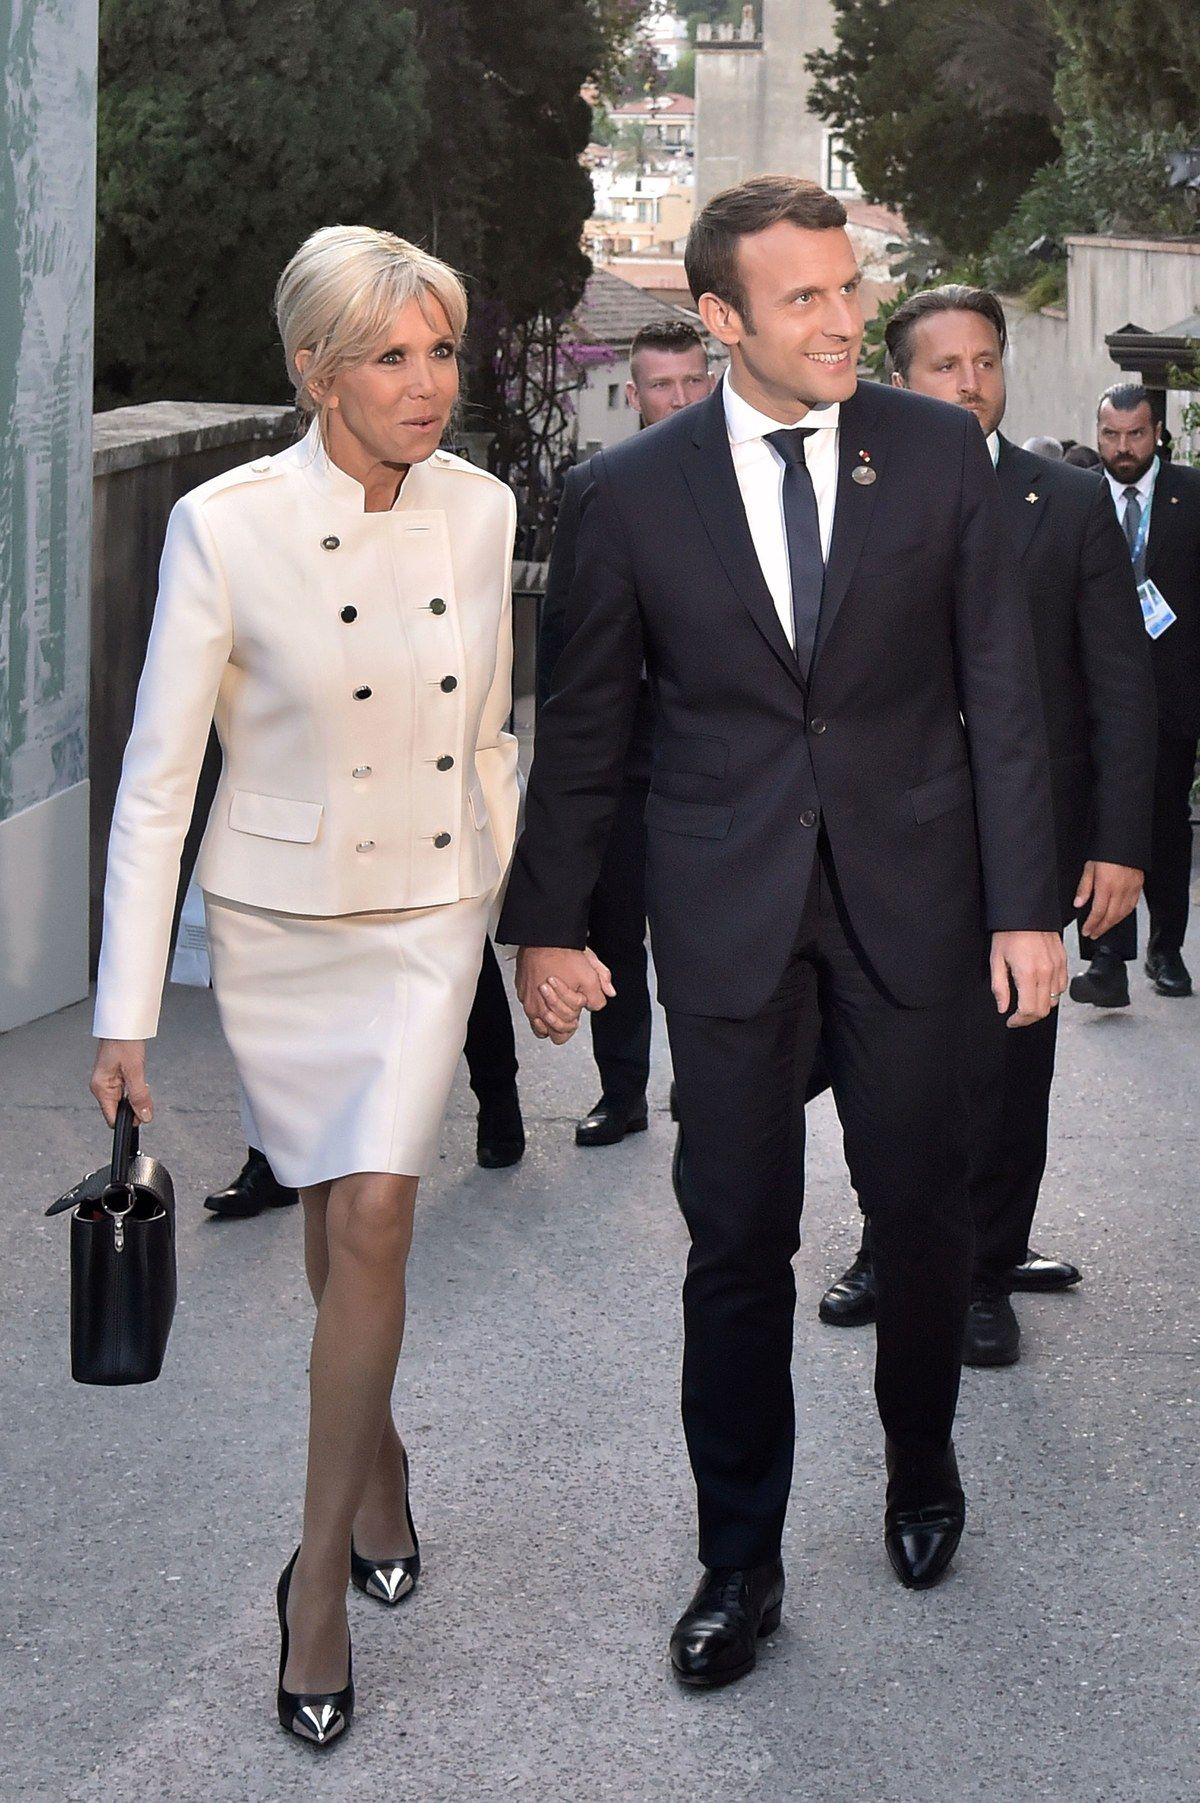 Brigitte Macron S Jaw Dropping Legs Prove That In France Age Is Just A Number Vogue French First Lady First Lady Fashion